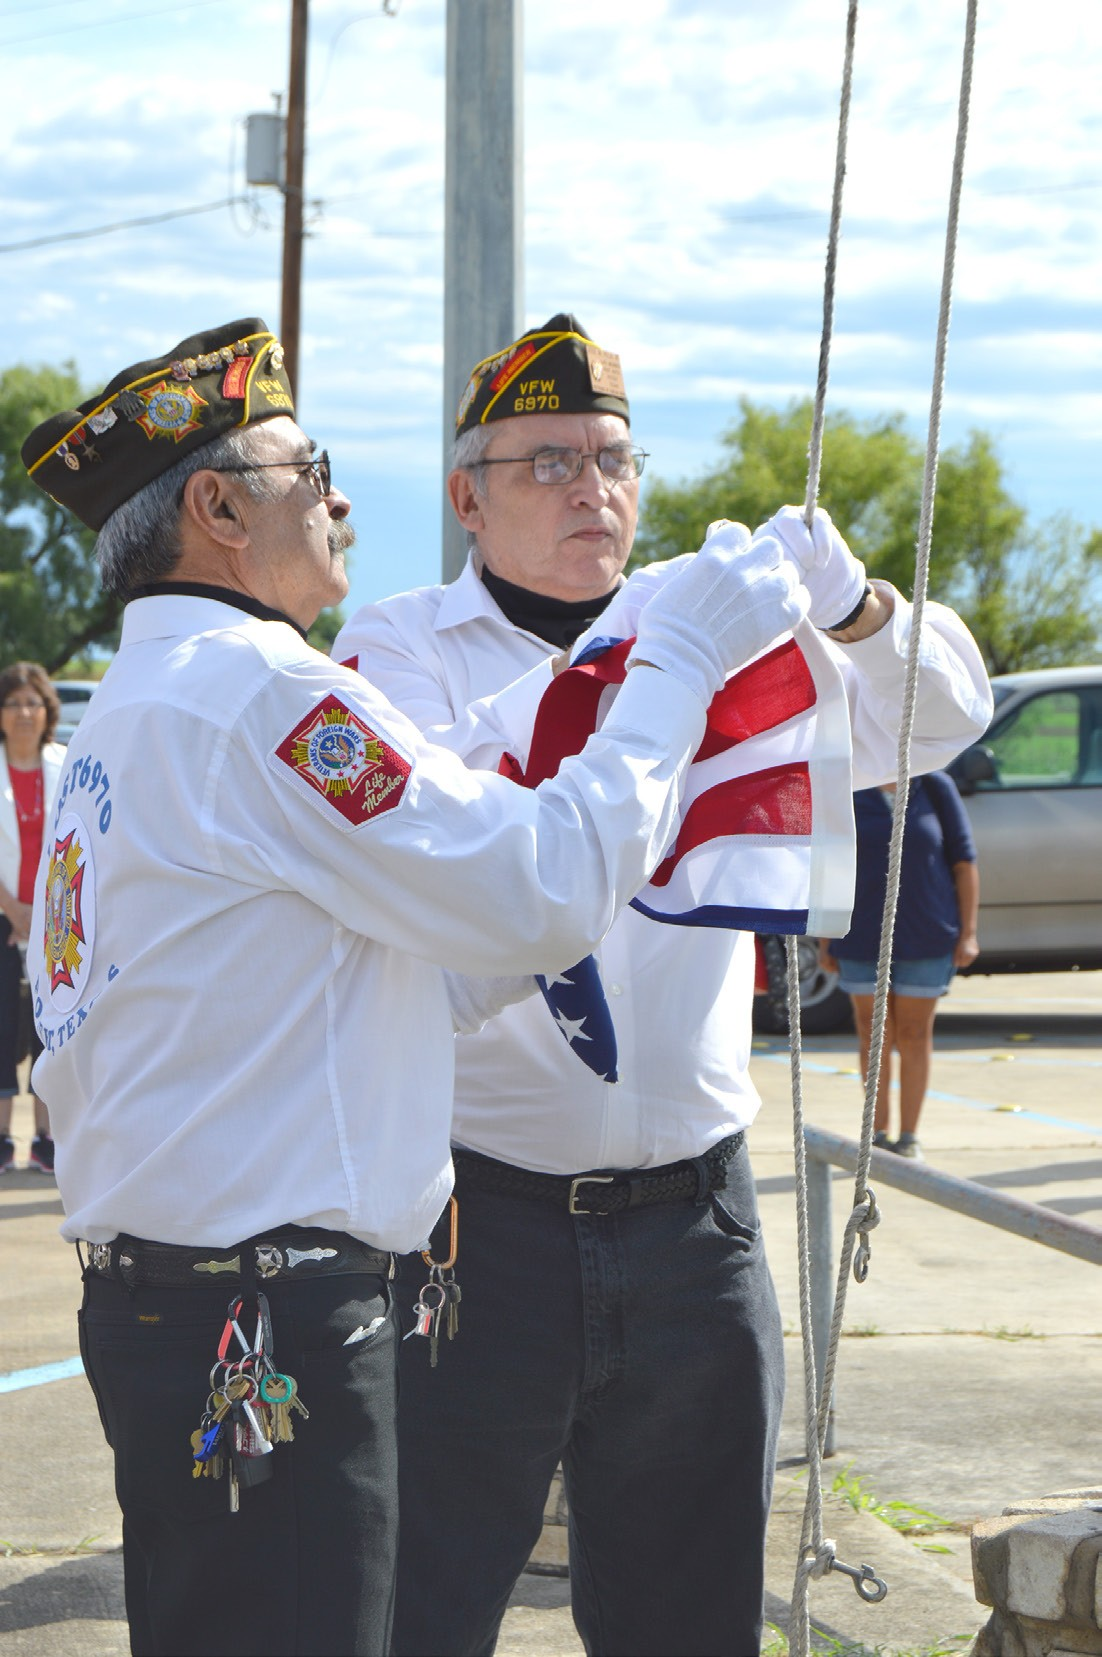 Roy Casarez (left) and Joe Vela (right) attach the American Flag to be raised and then lowered it to half staff in honor of our nation's veterans, especially those who lost their lives while defending our country. The ceremony was held at the Poteet VFW Post 6970 on Monday, May 30.